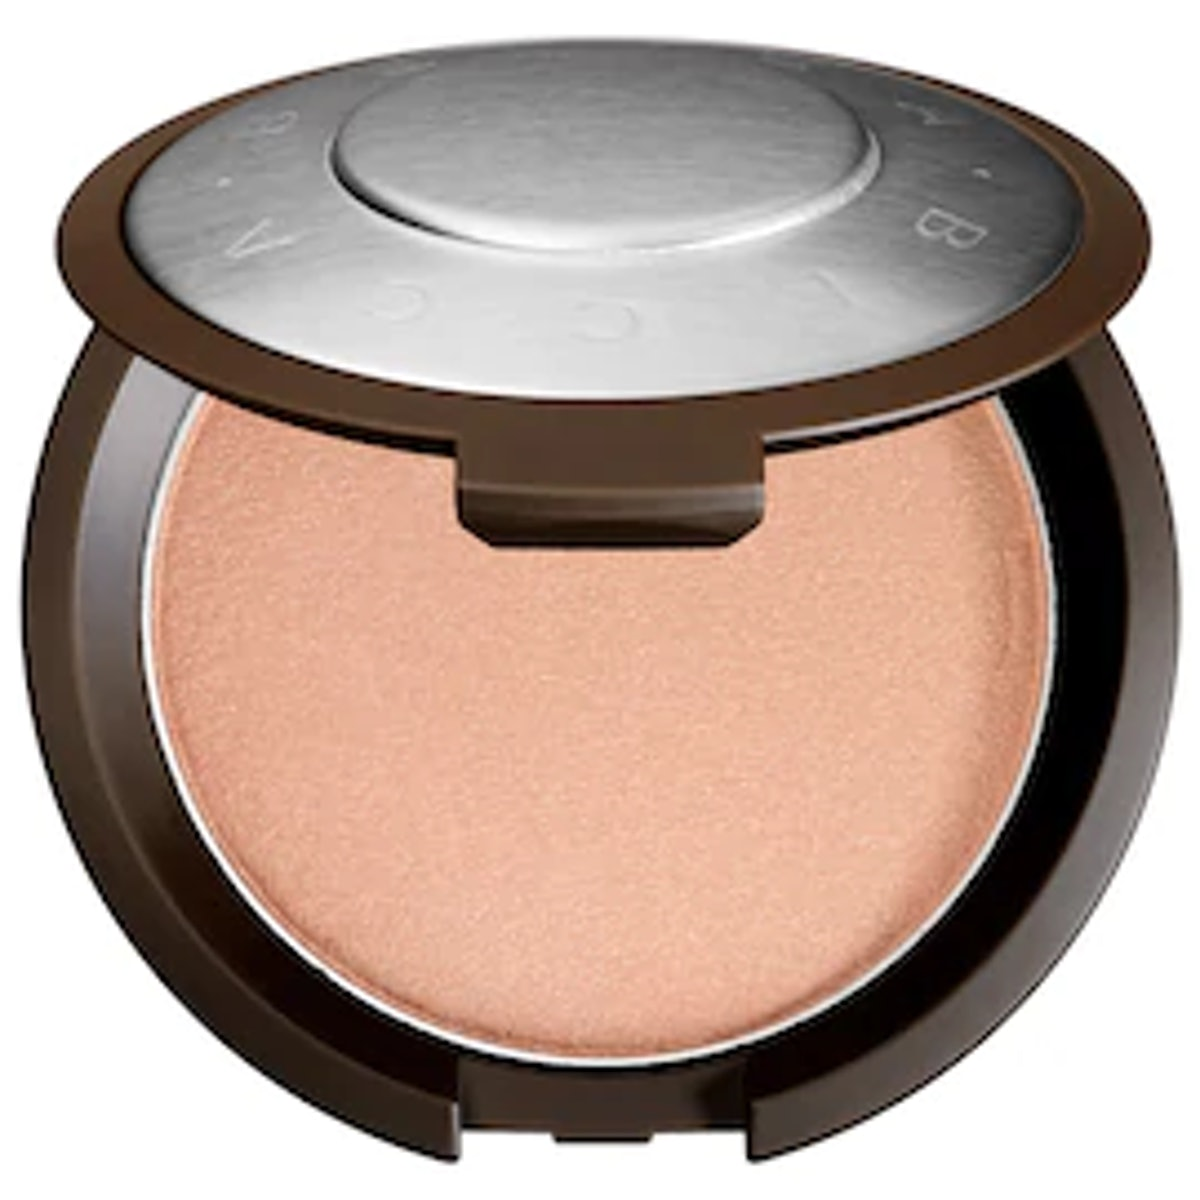 BECCA Shimmering Skin Perfector® Pressed Highlighter Mini